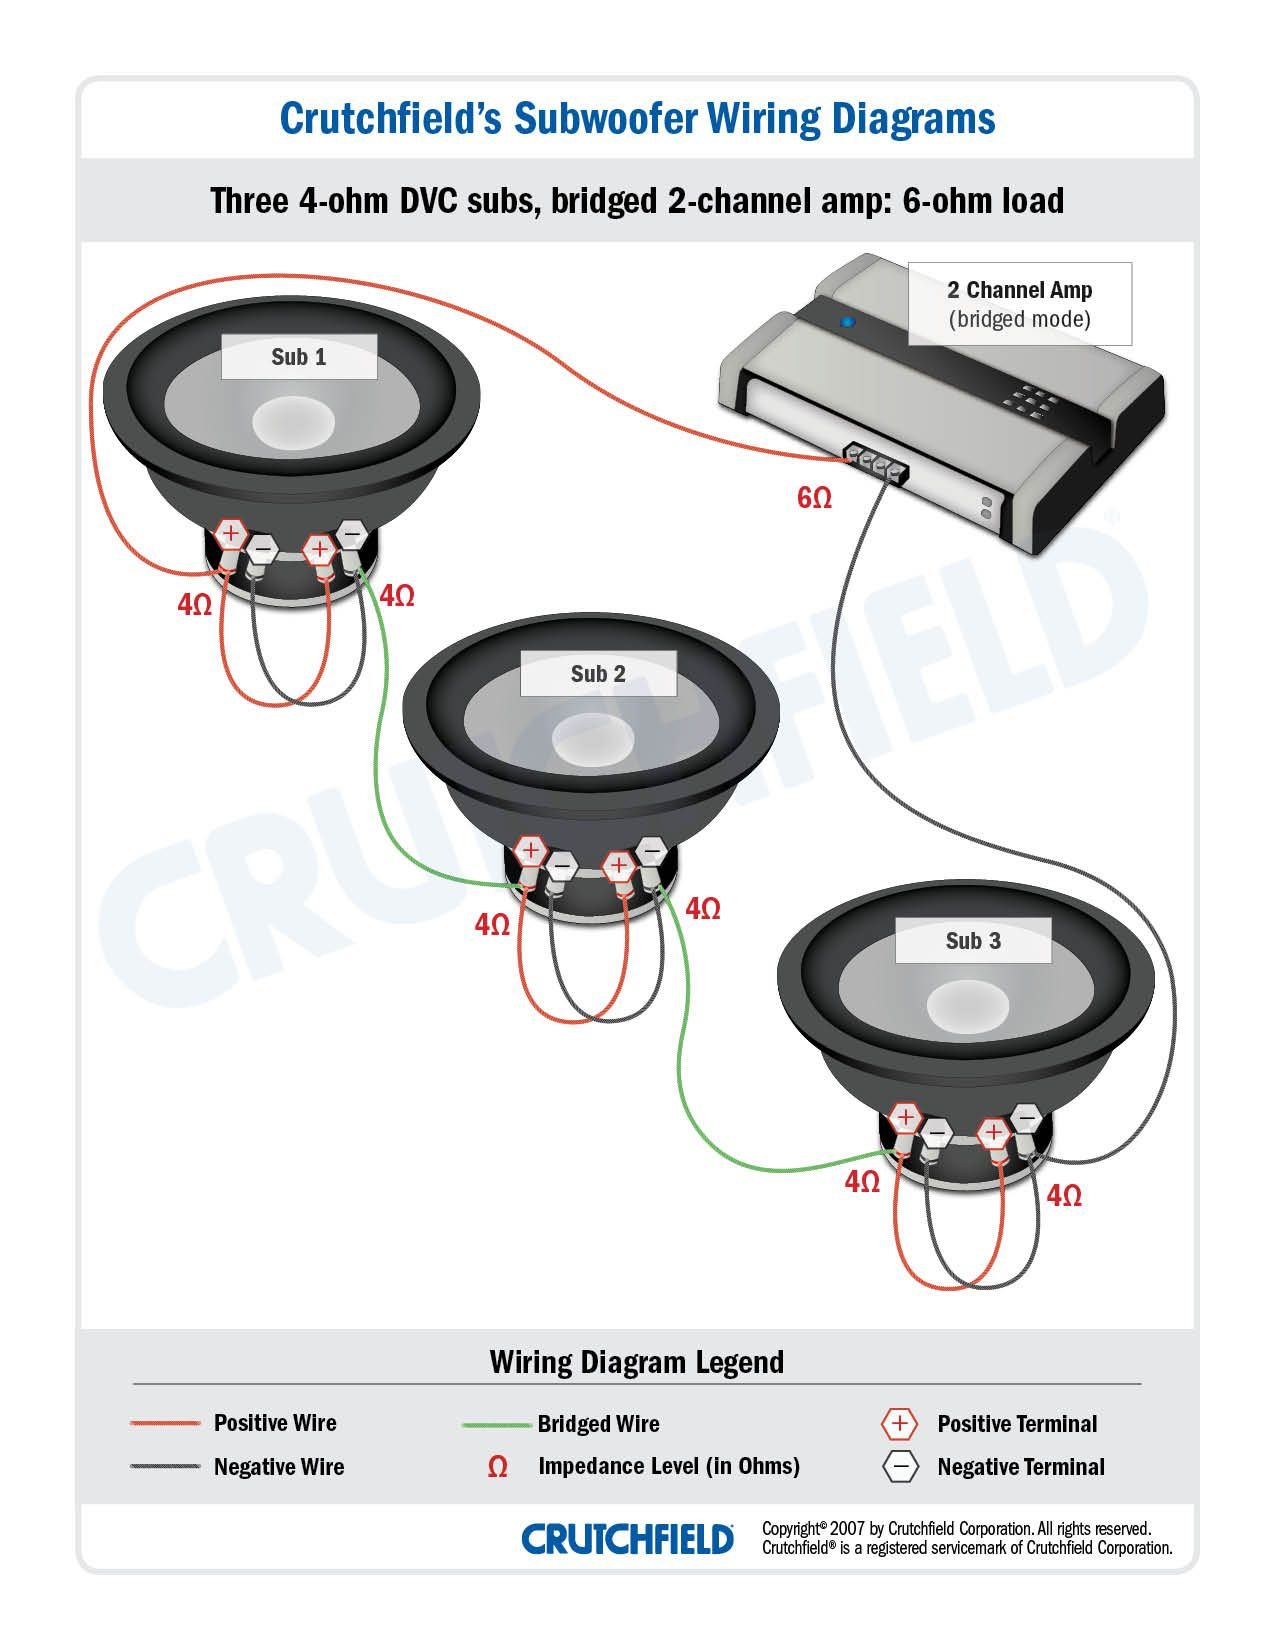 Top 10 Subwoofer Wiring Diagram Free Download 3 Dvc 4 Ohm 2 Ch Top 10 Subwoofer Wiring Diagram